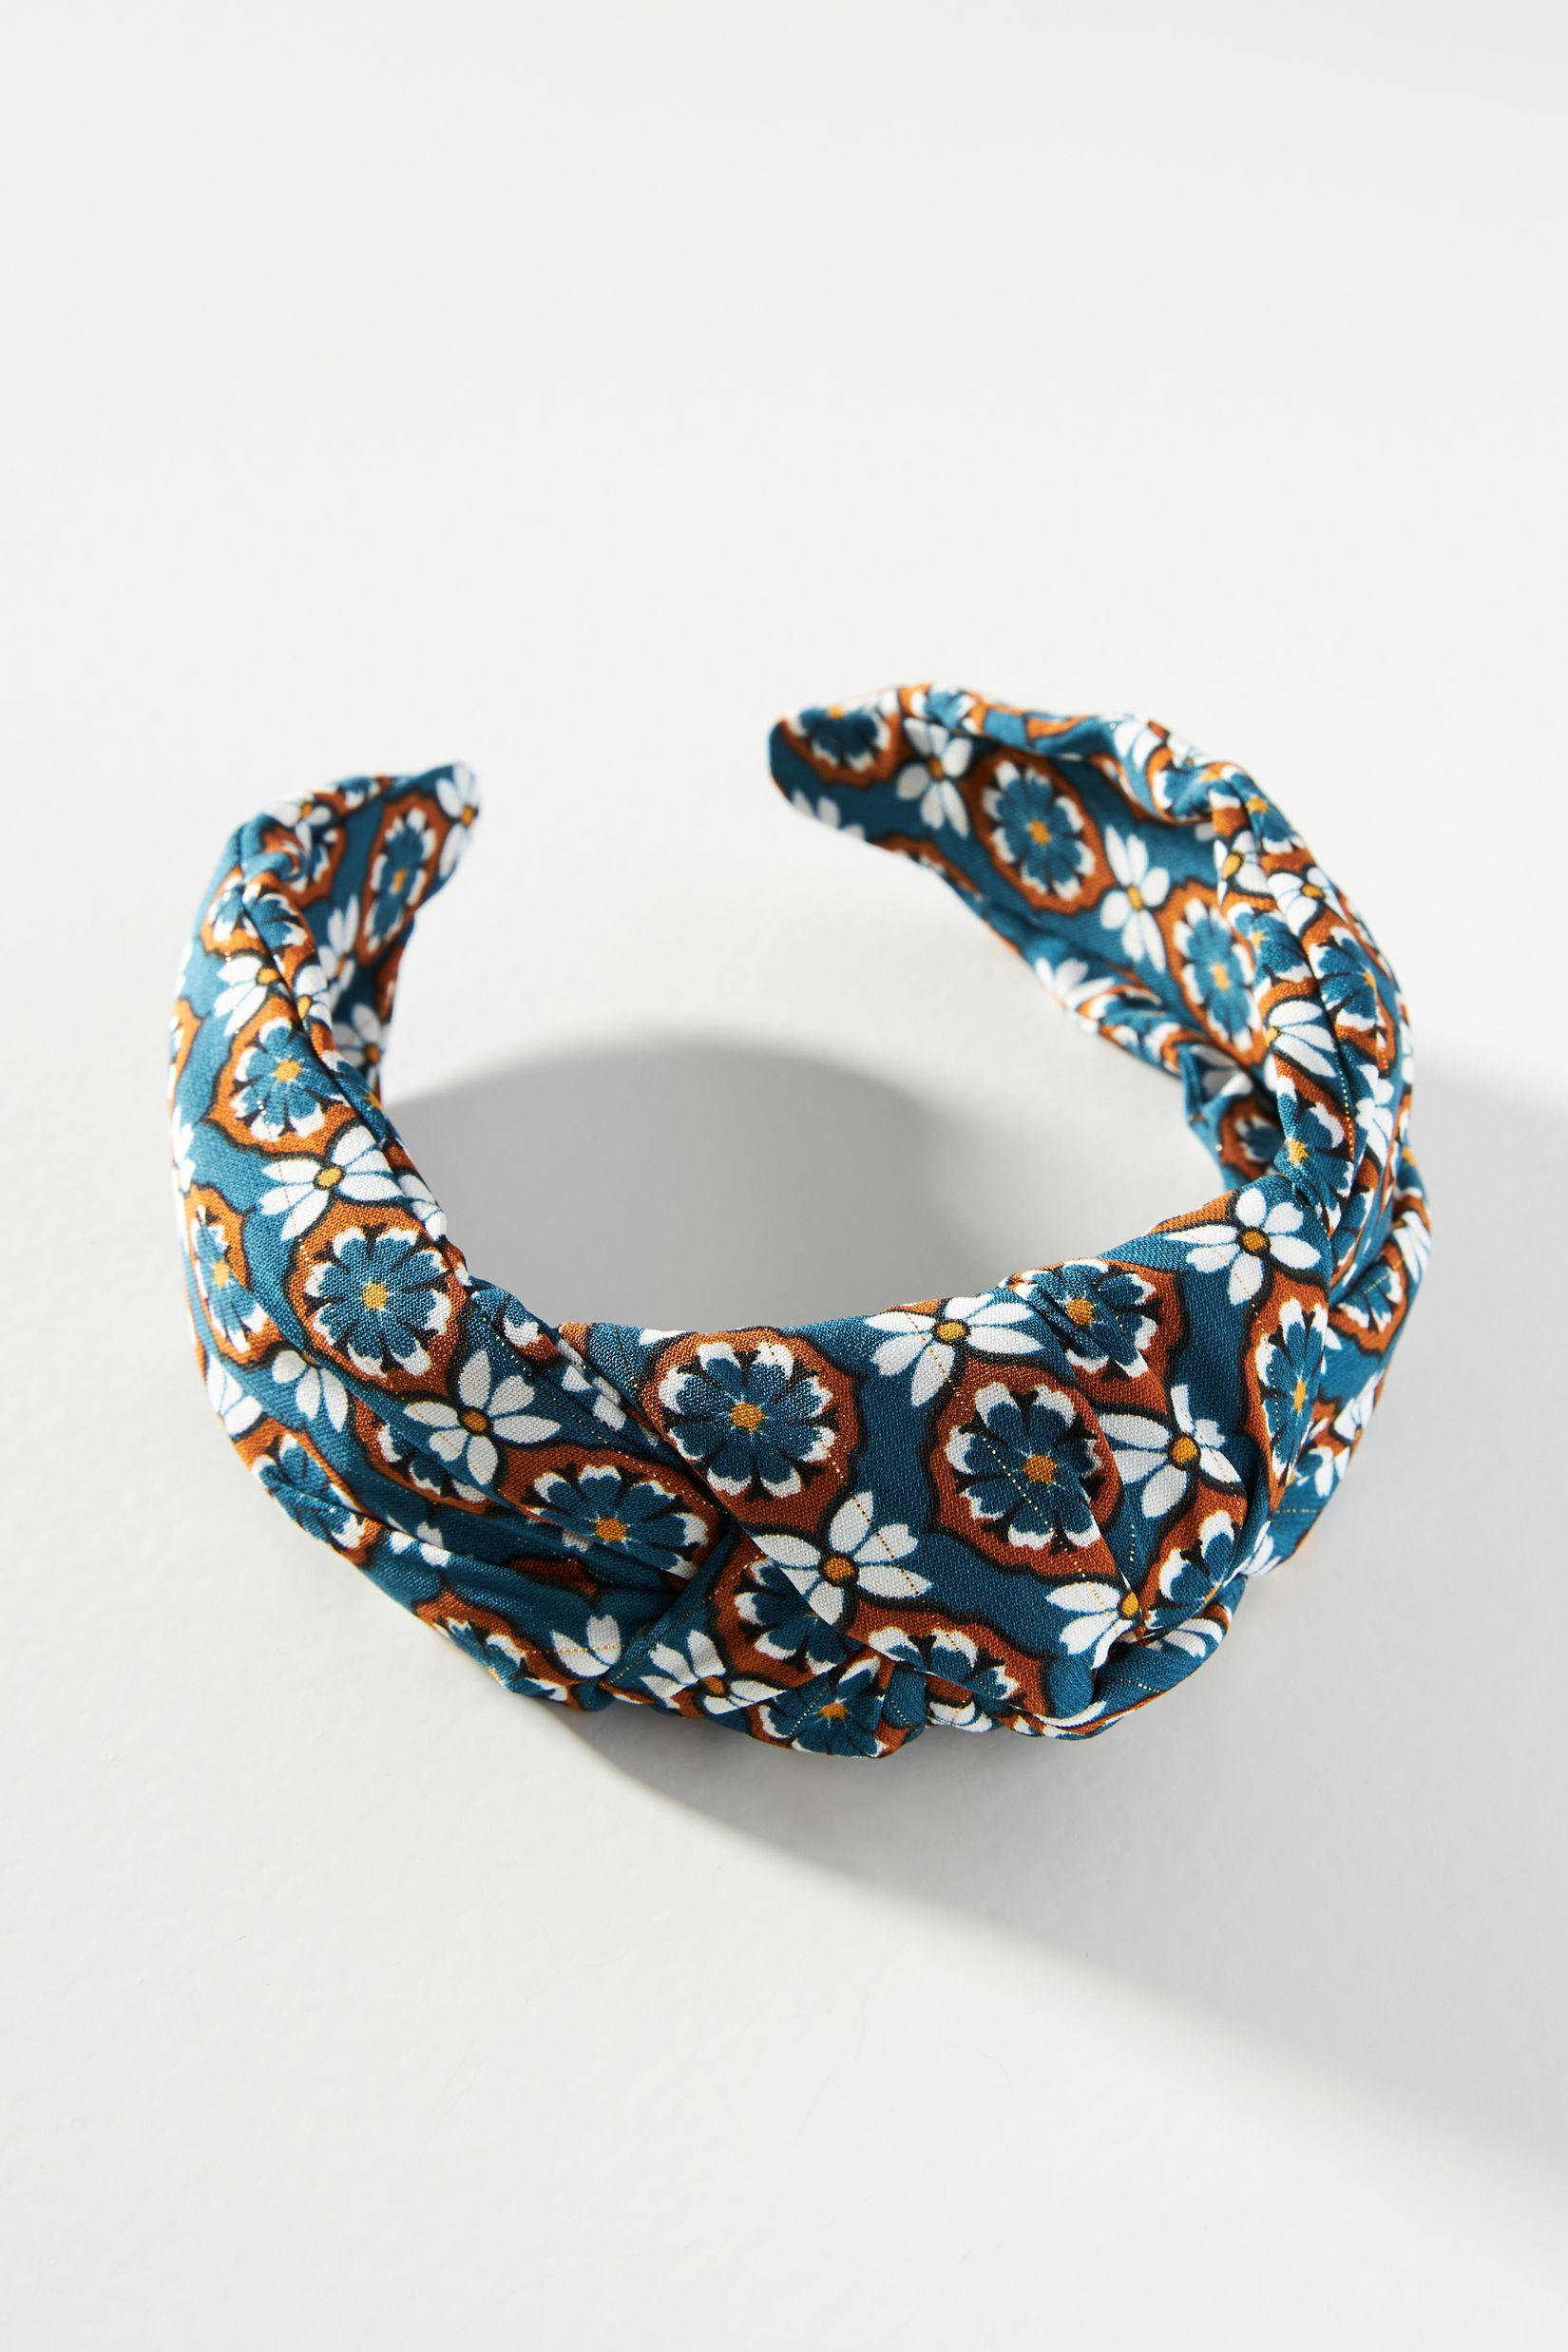 Tile-Printed Knotted Headband